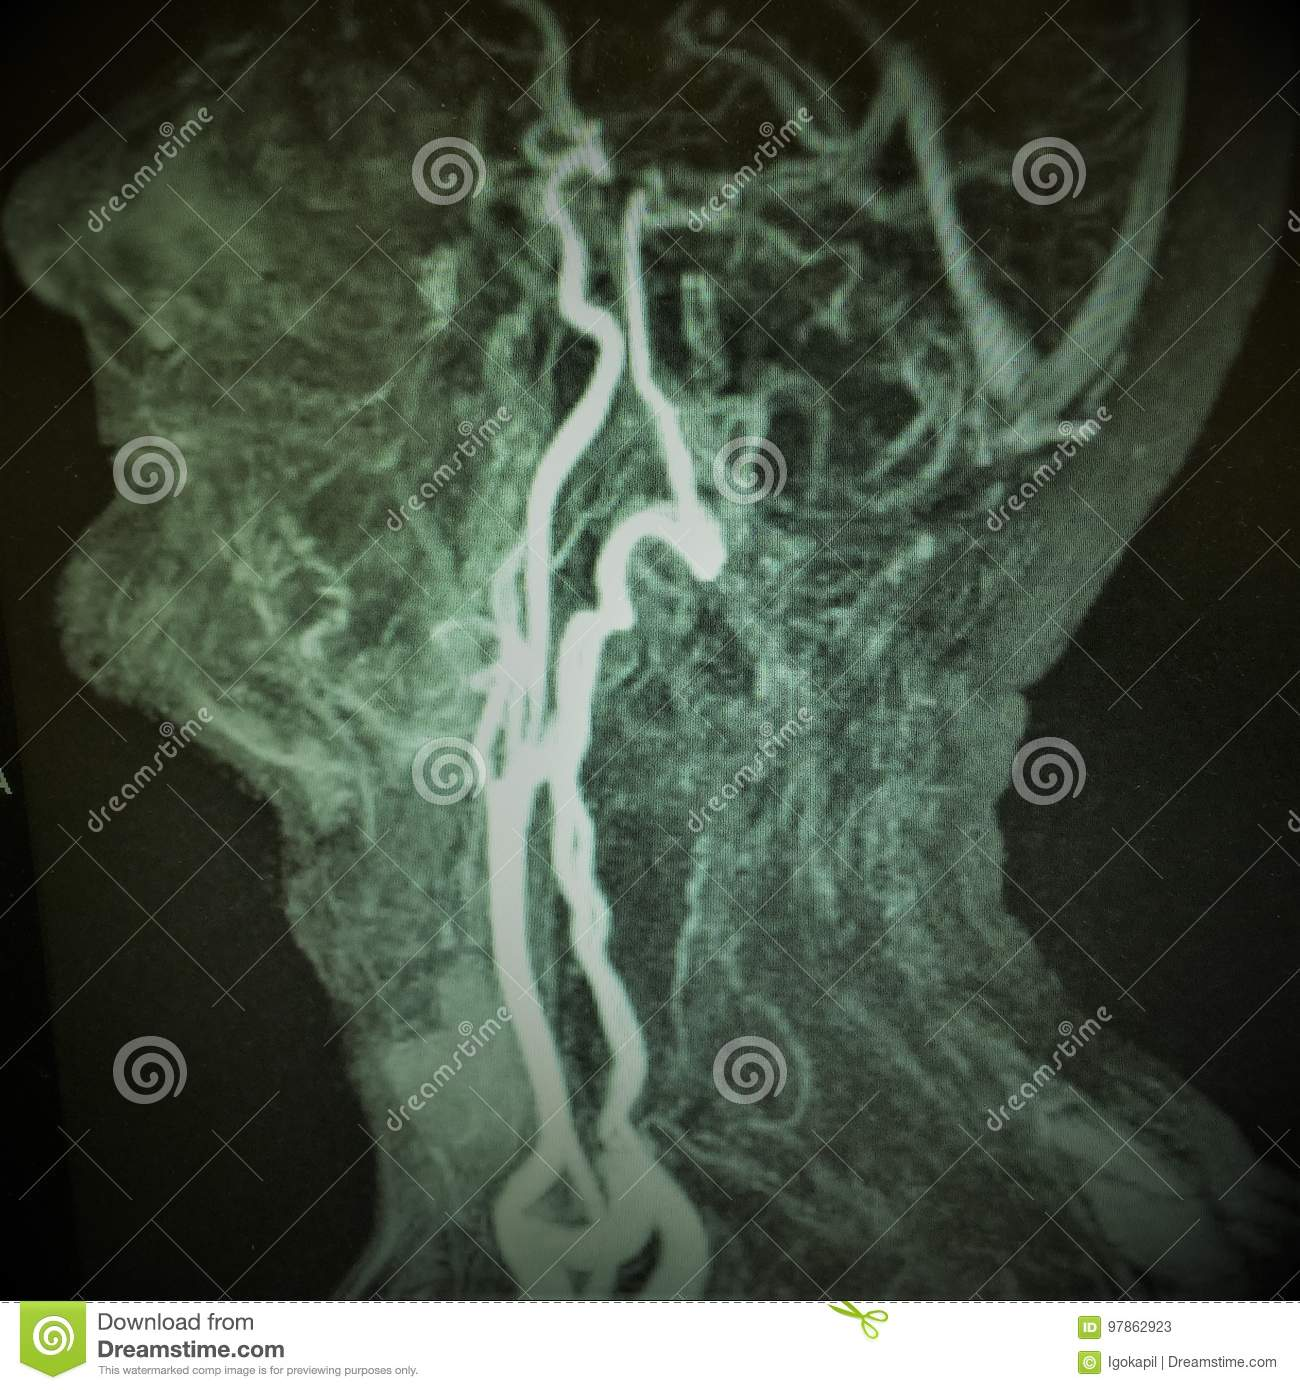 Mri Carotid Artery Complete Occlusion Stock Image Image Of Medical